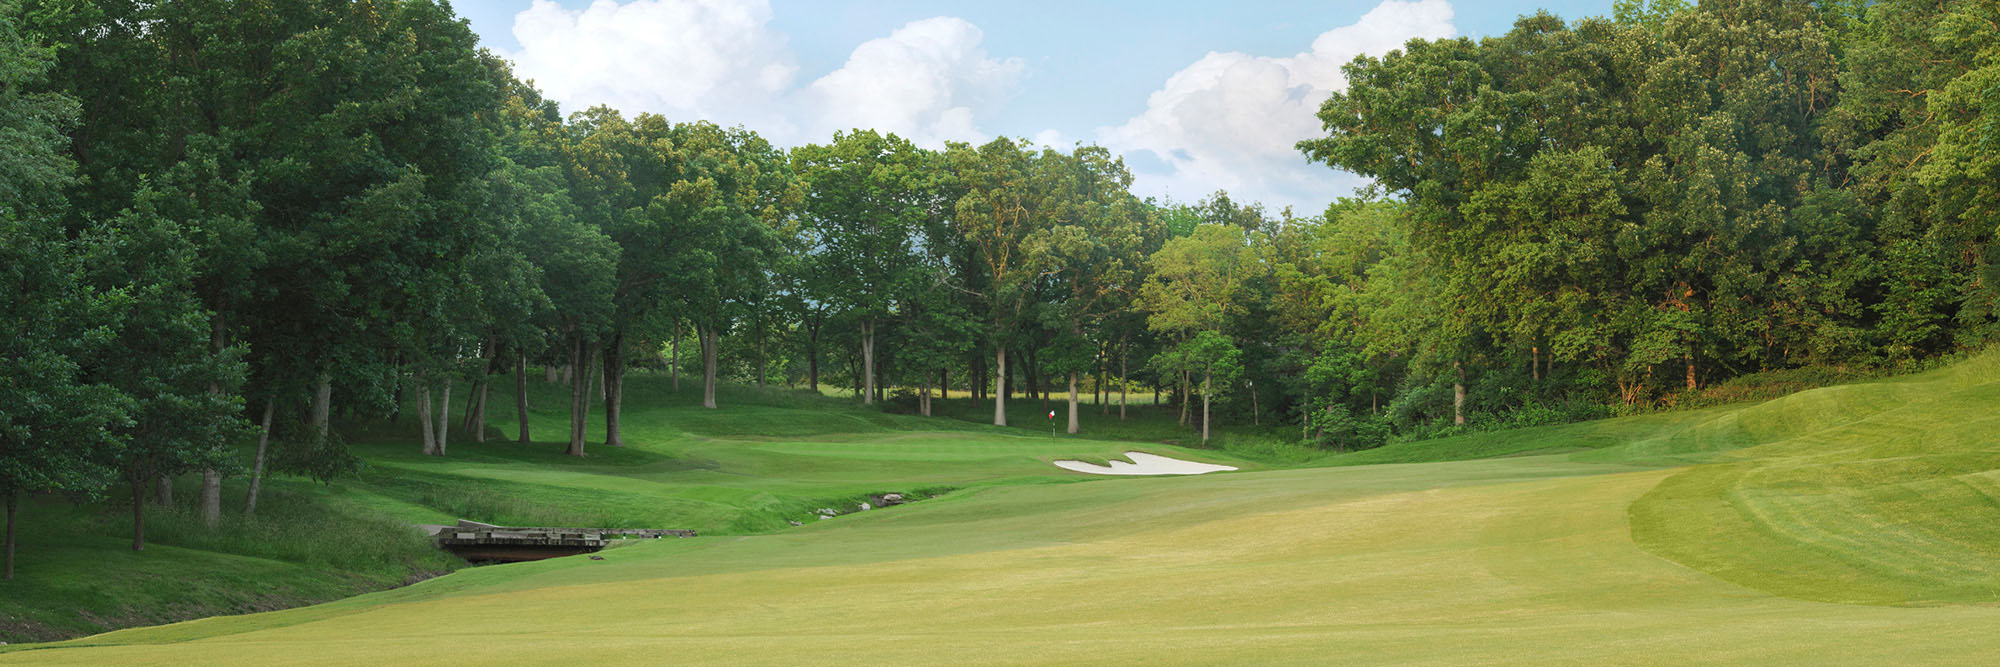 Golf Course Image - Hallbrook No. 7